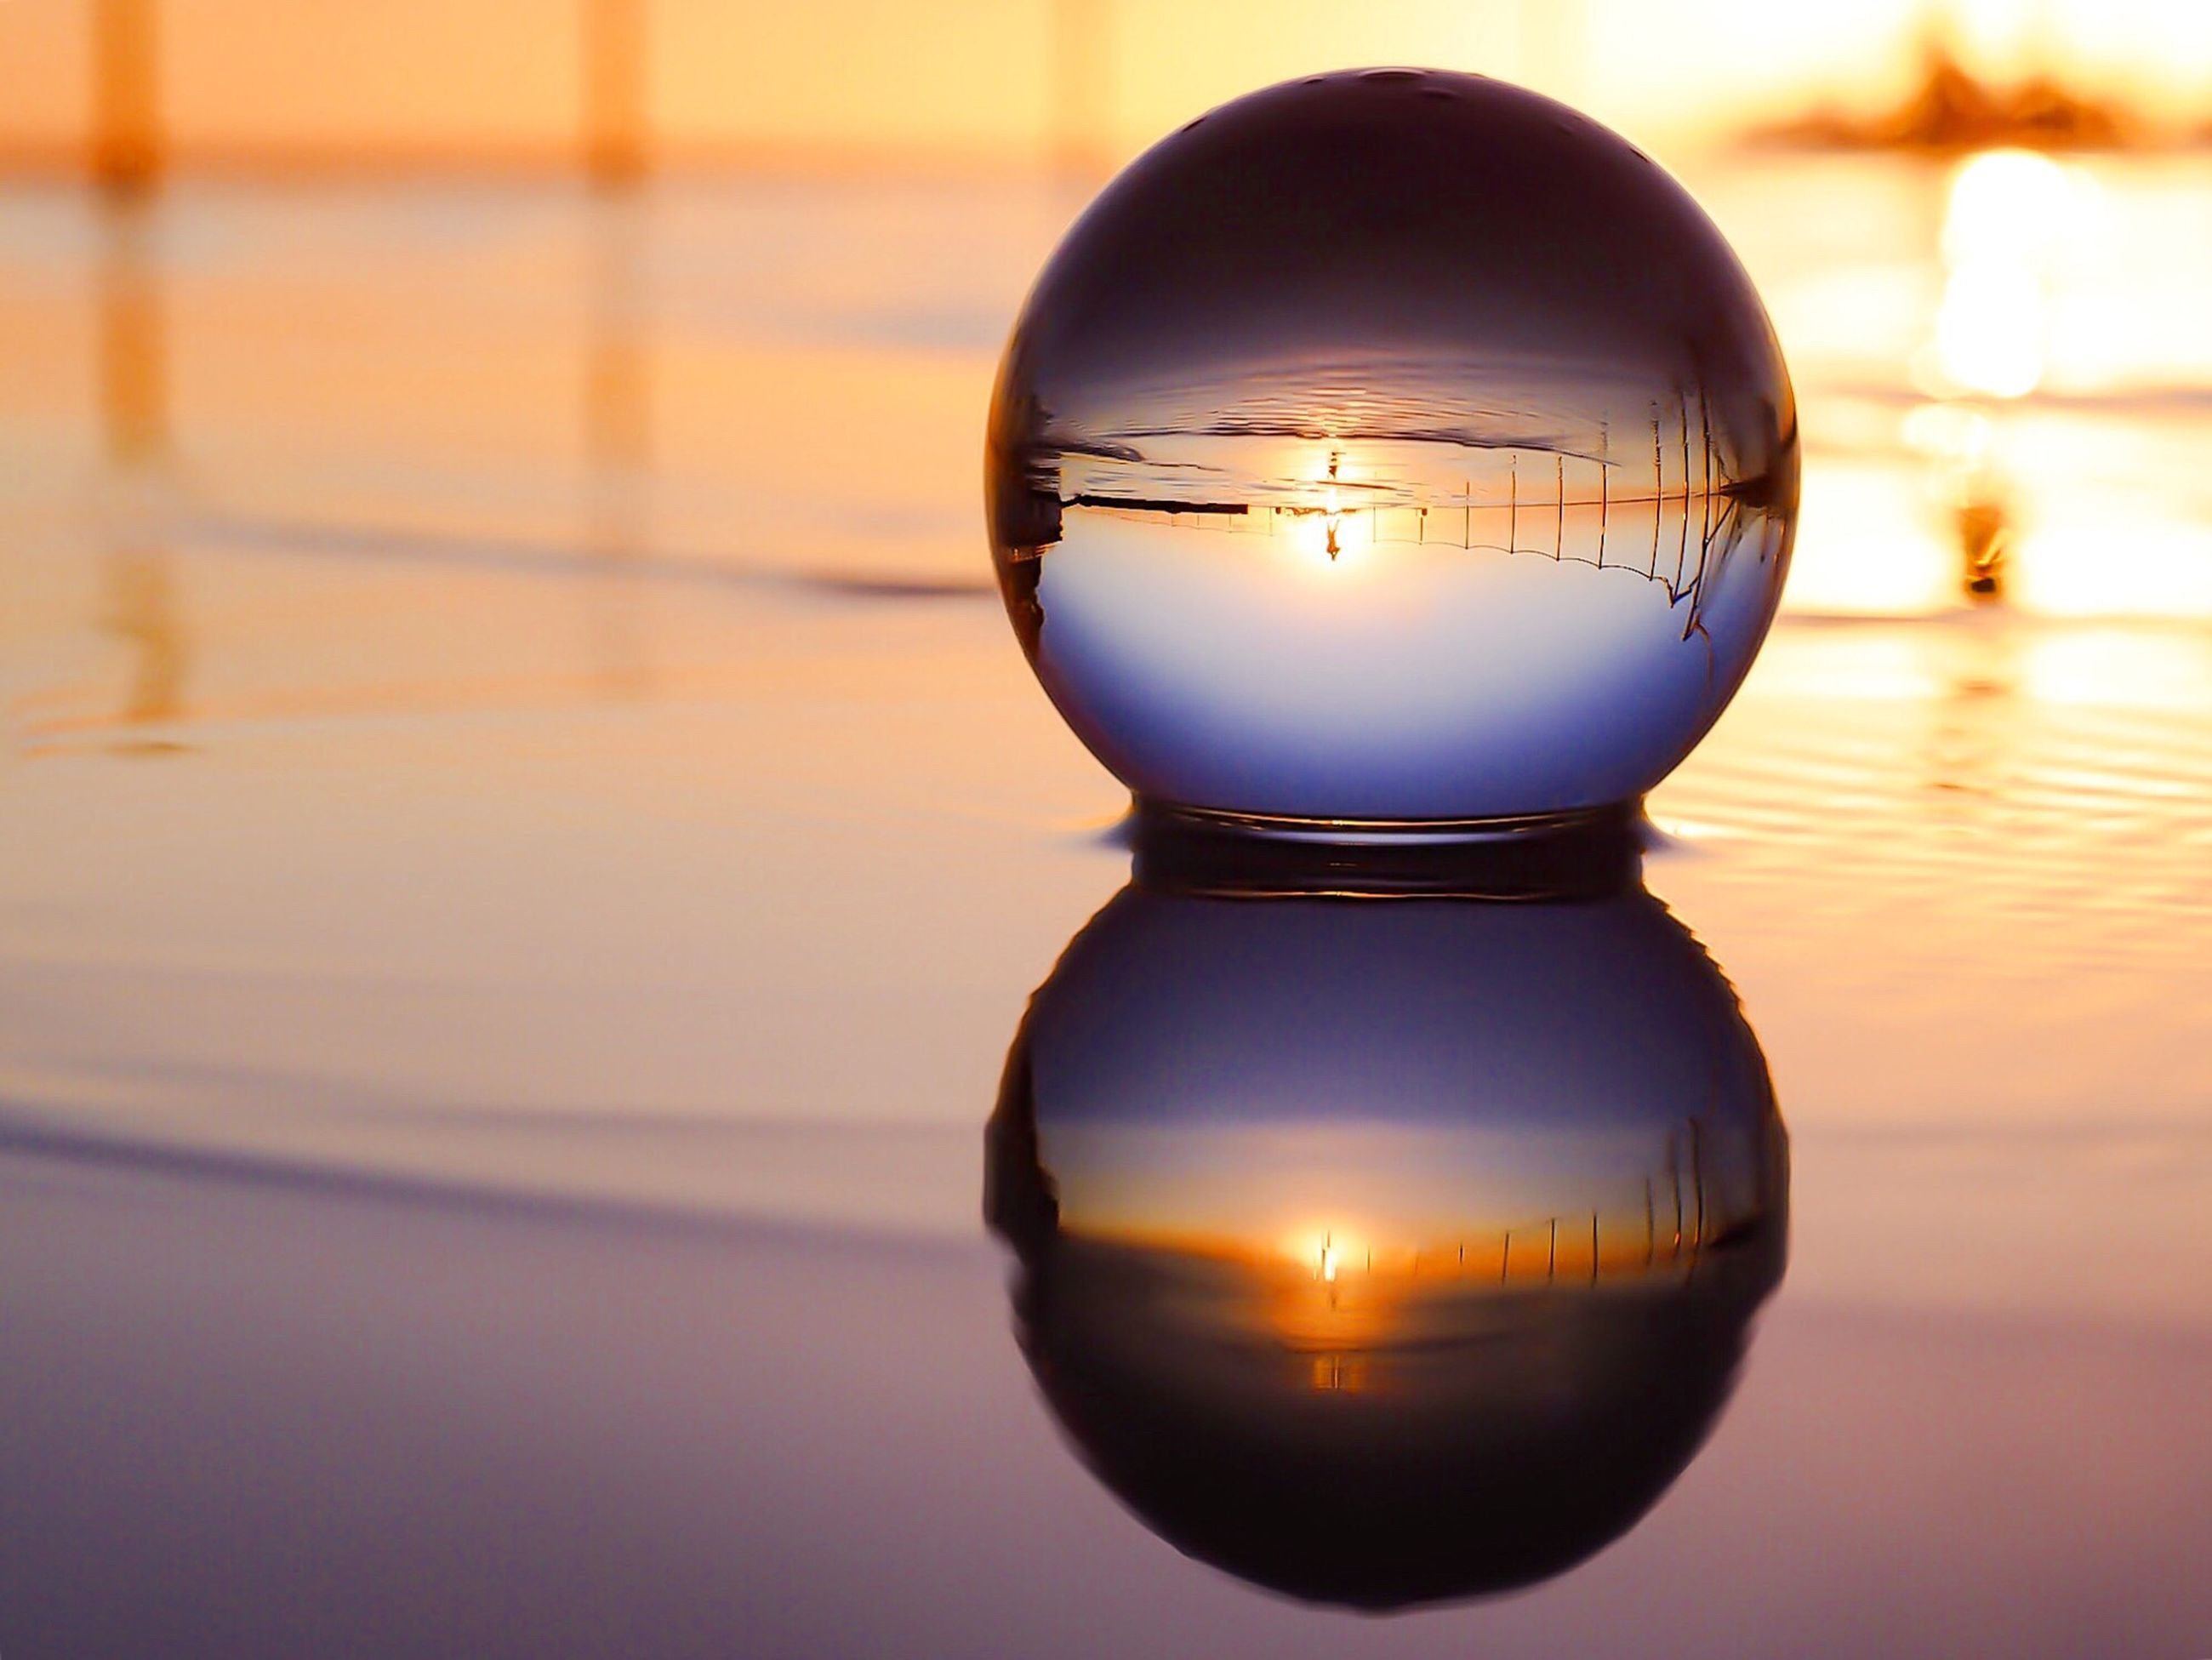 reflection, water, focus on foreground, indoors, close-up, sunset, illuminated, no people, nature, sky, day